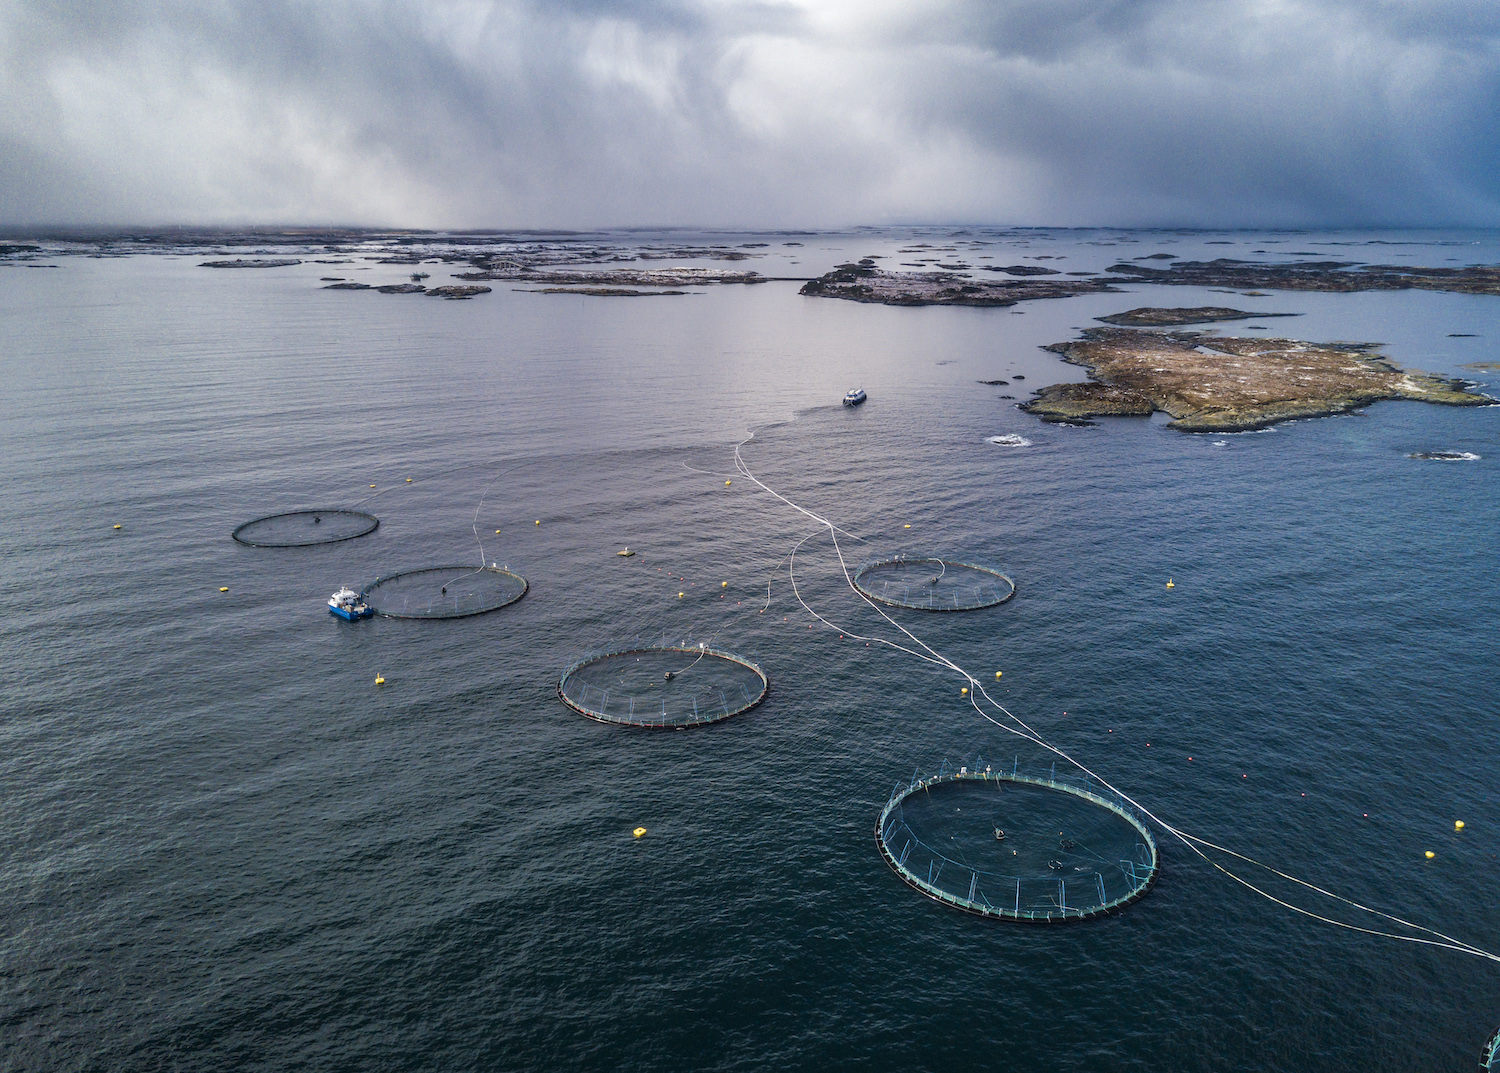 Birds' eye view of a Norwegian aquaculture farm